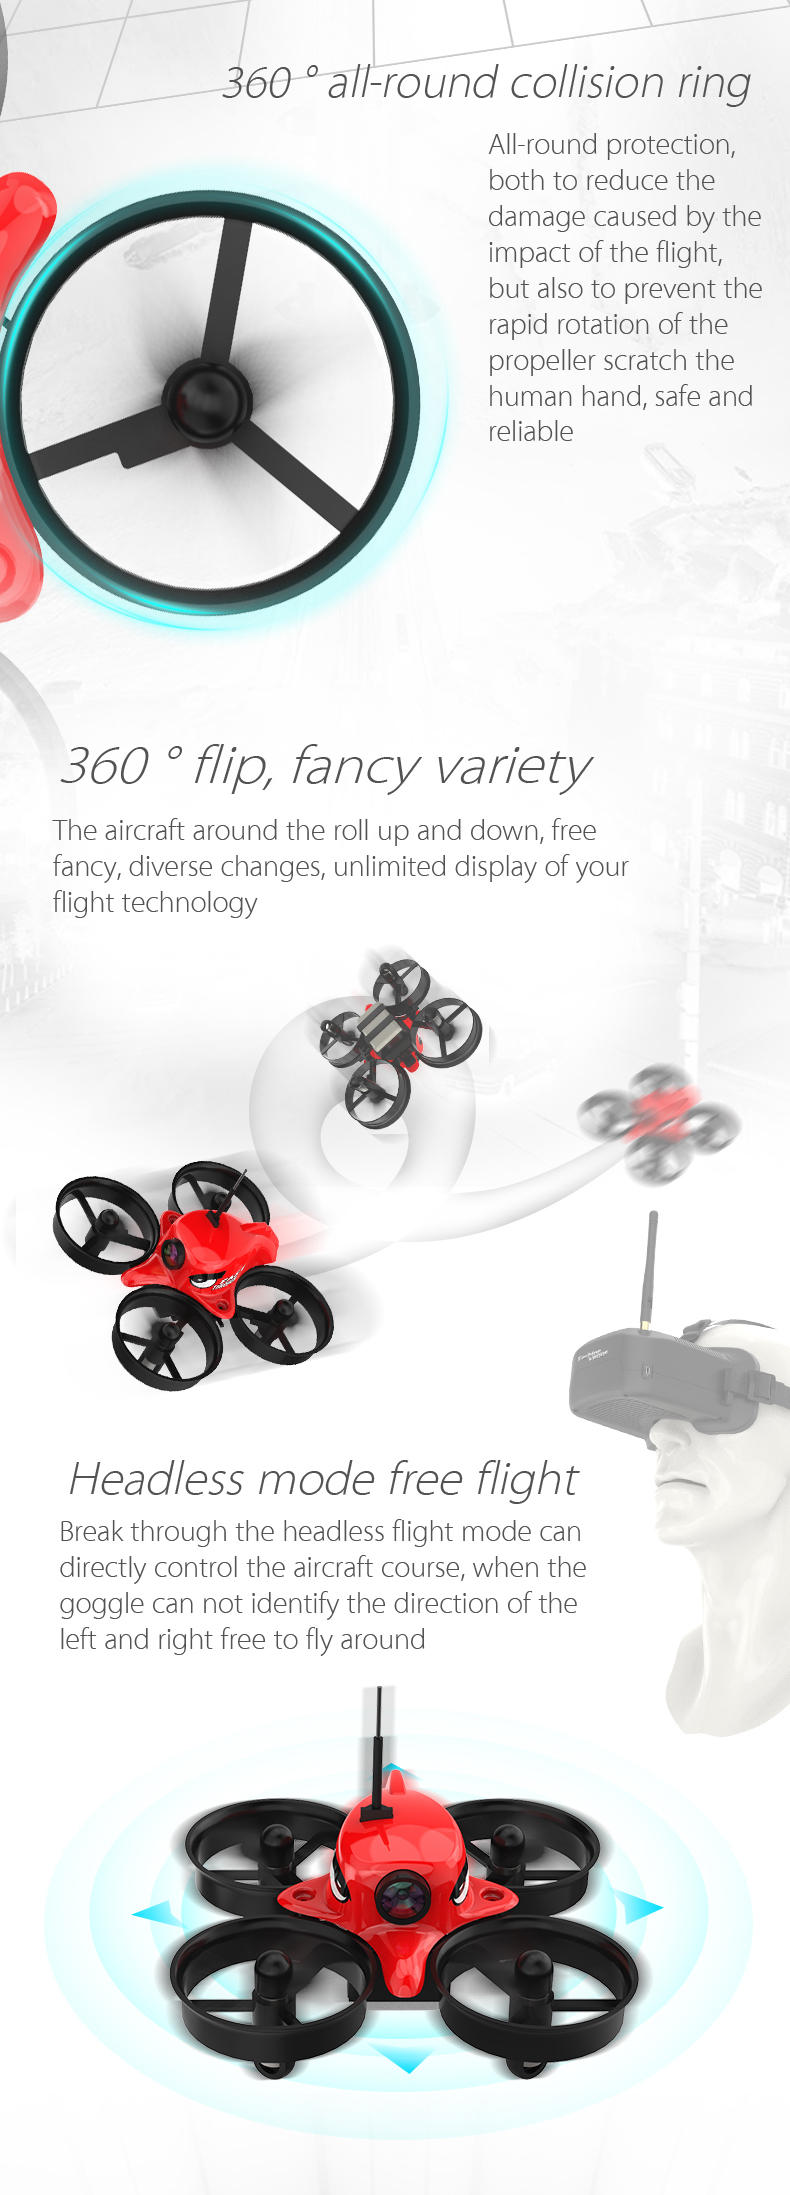 e013-quadcopter-kit-14.jpg